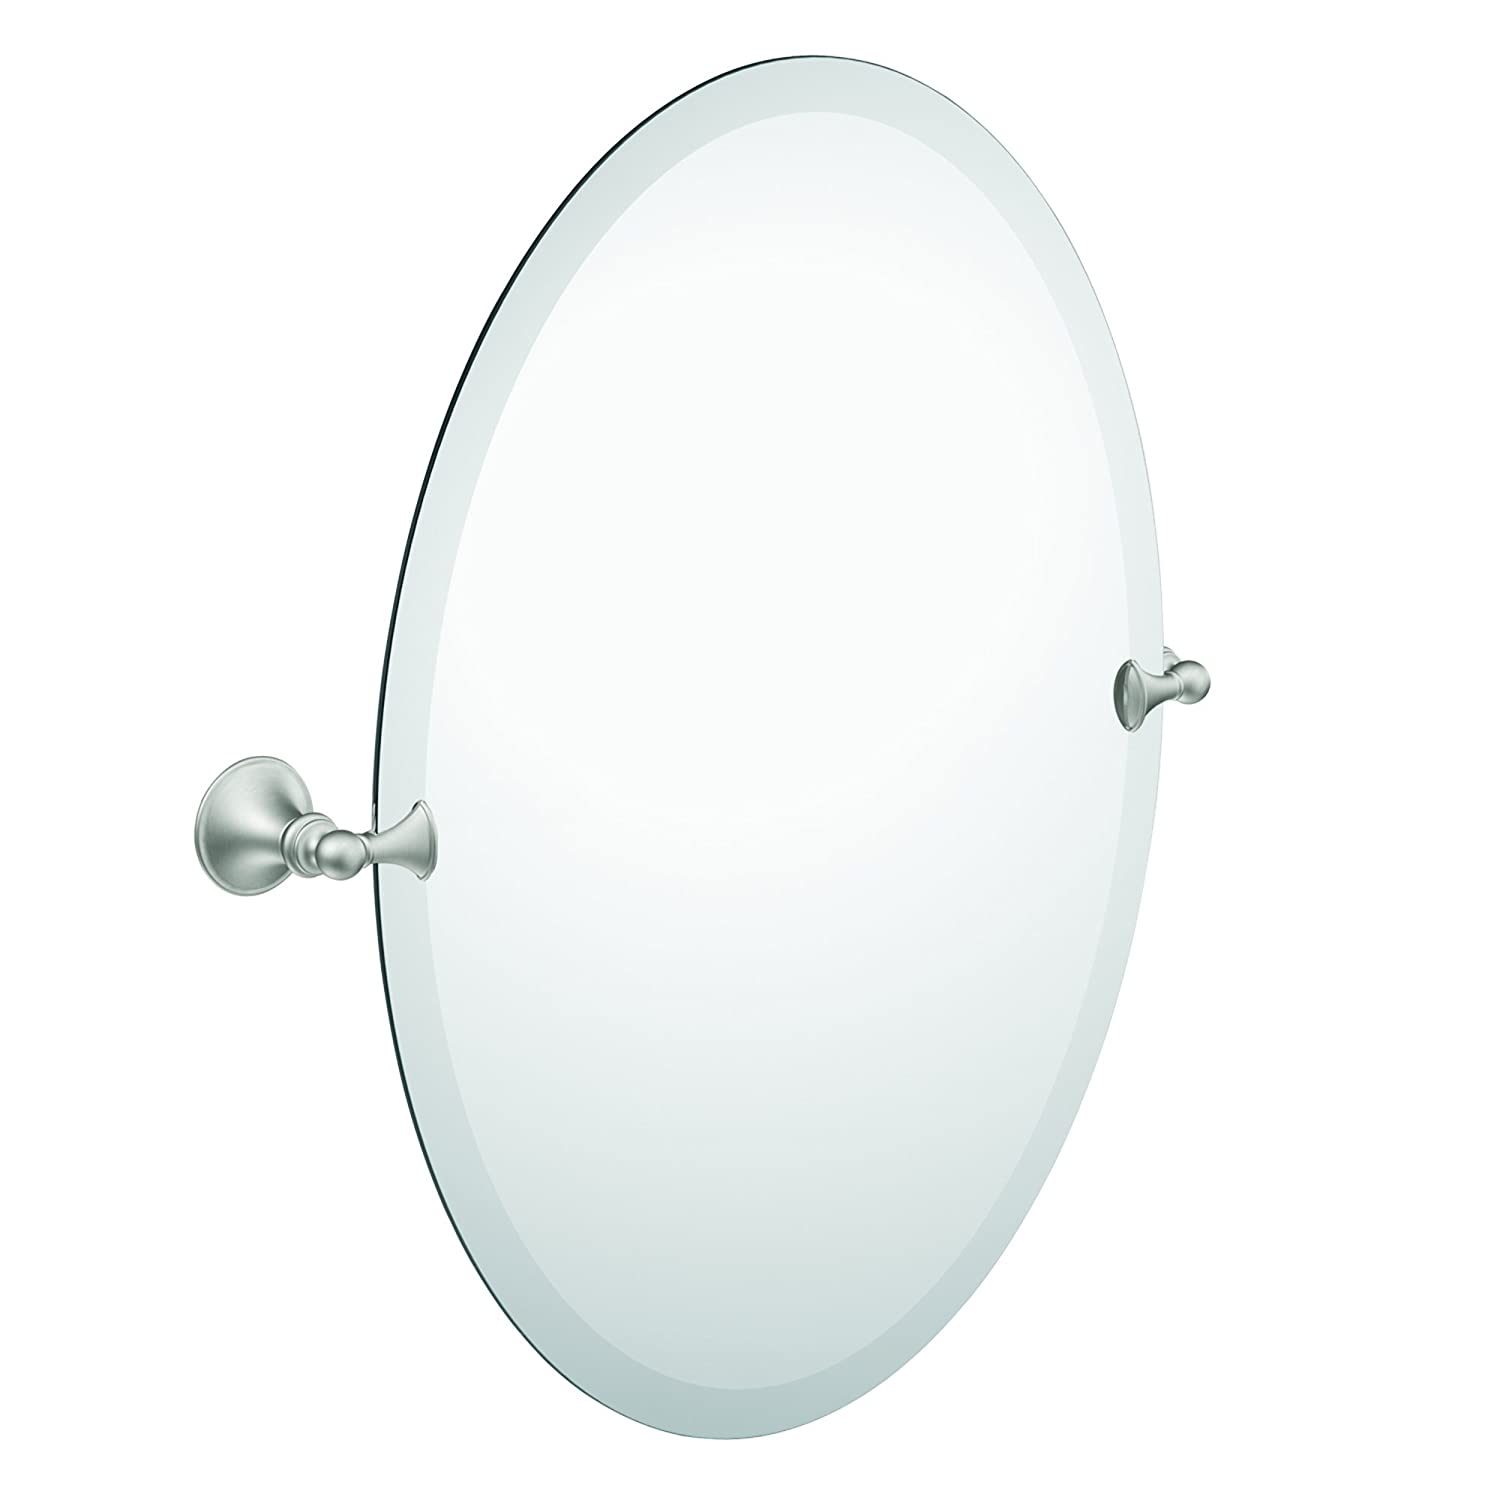 Amazon.com: Moen DN2692BN Glenshire Bathroom Oval Tilting Mirror, Brushed  Nickel: Home Improvement